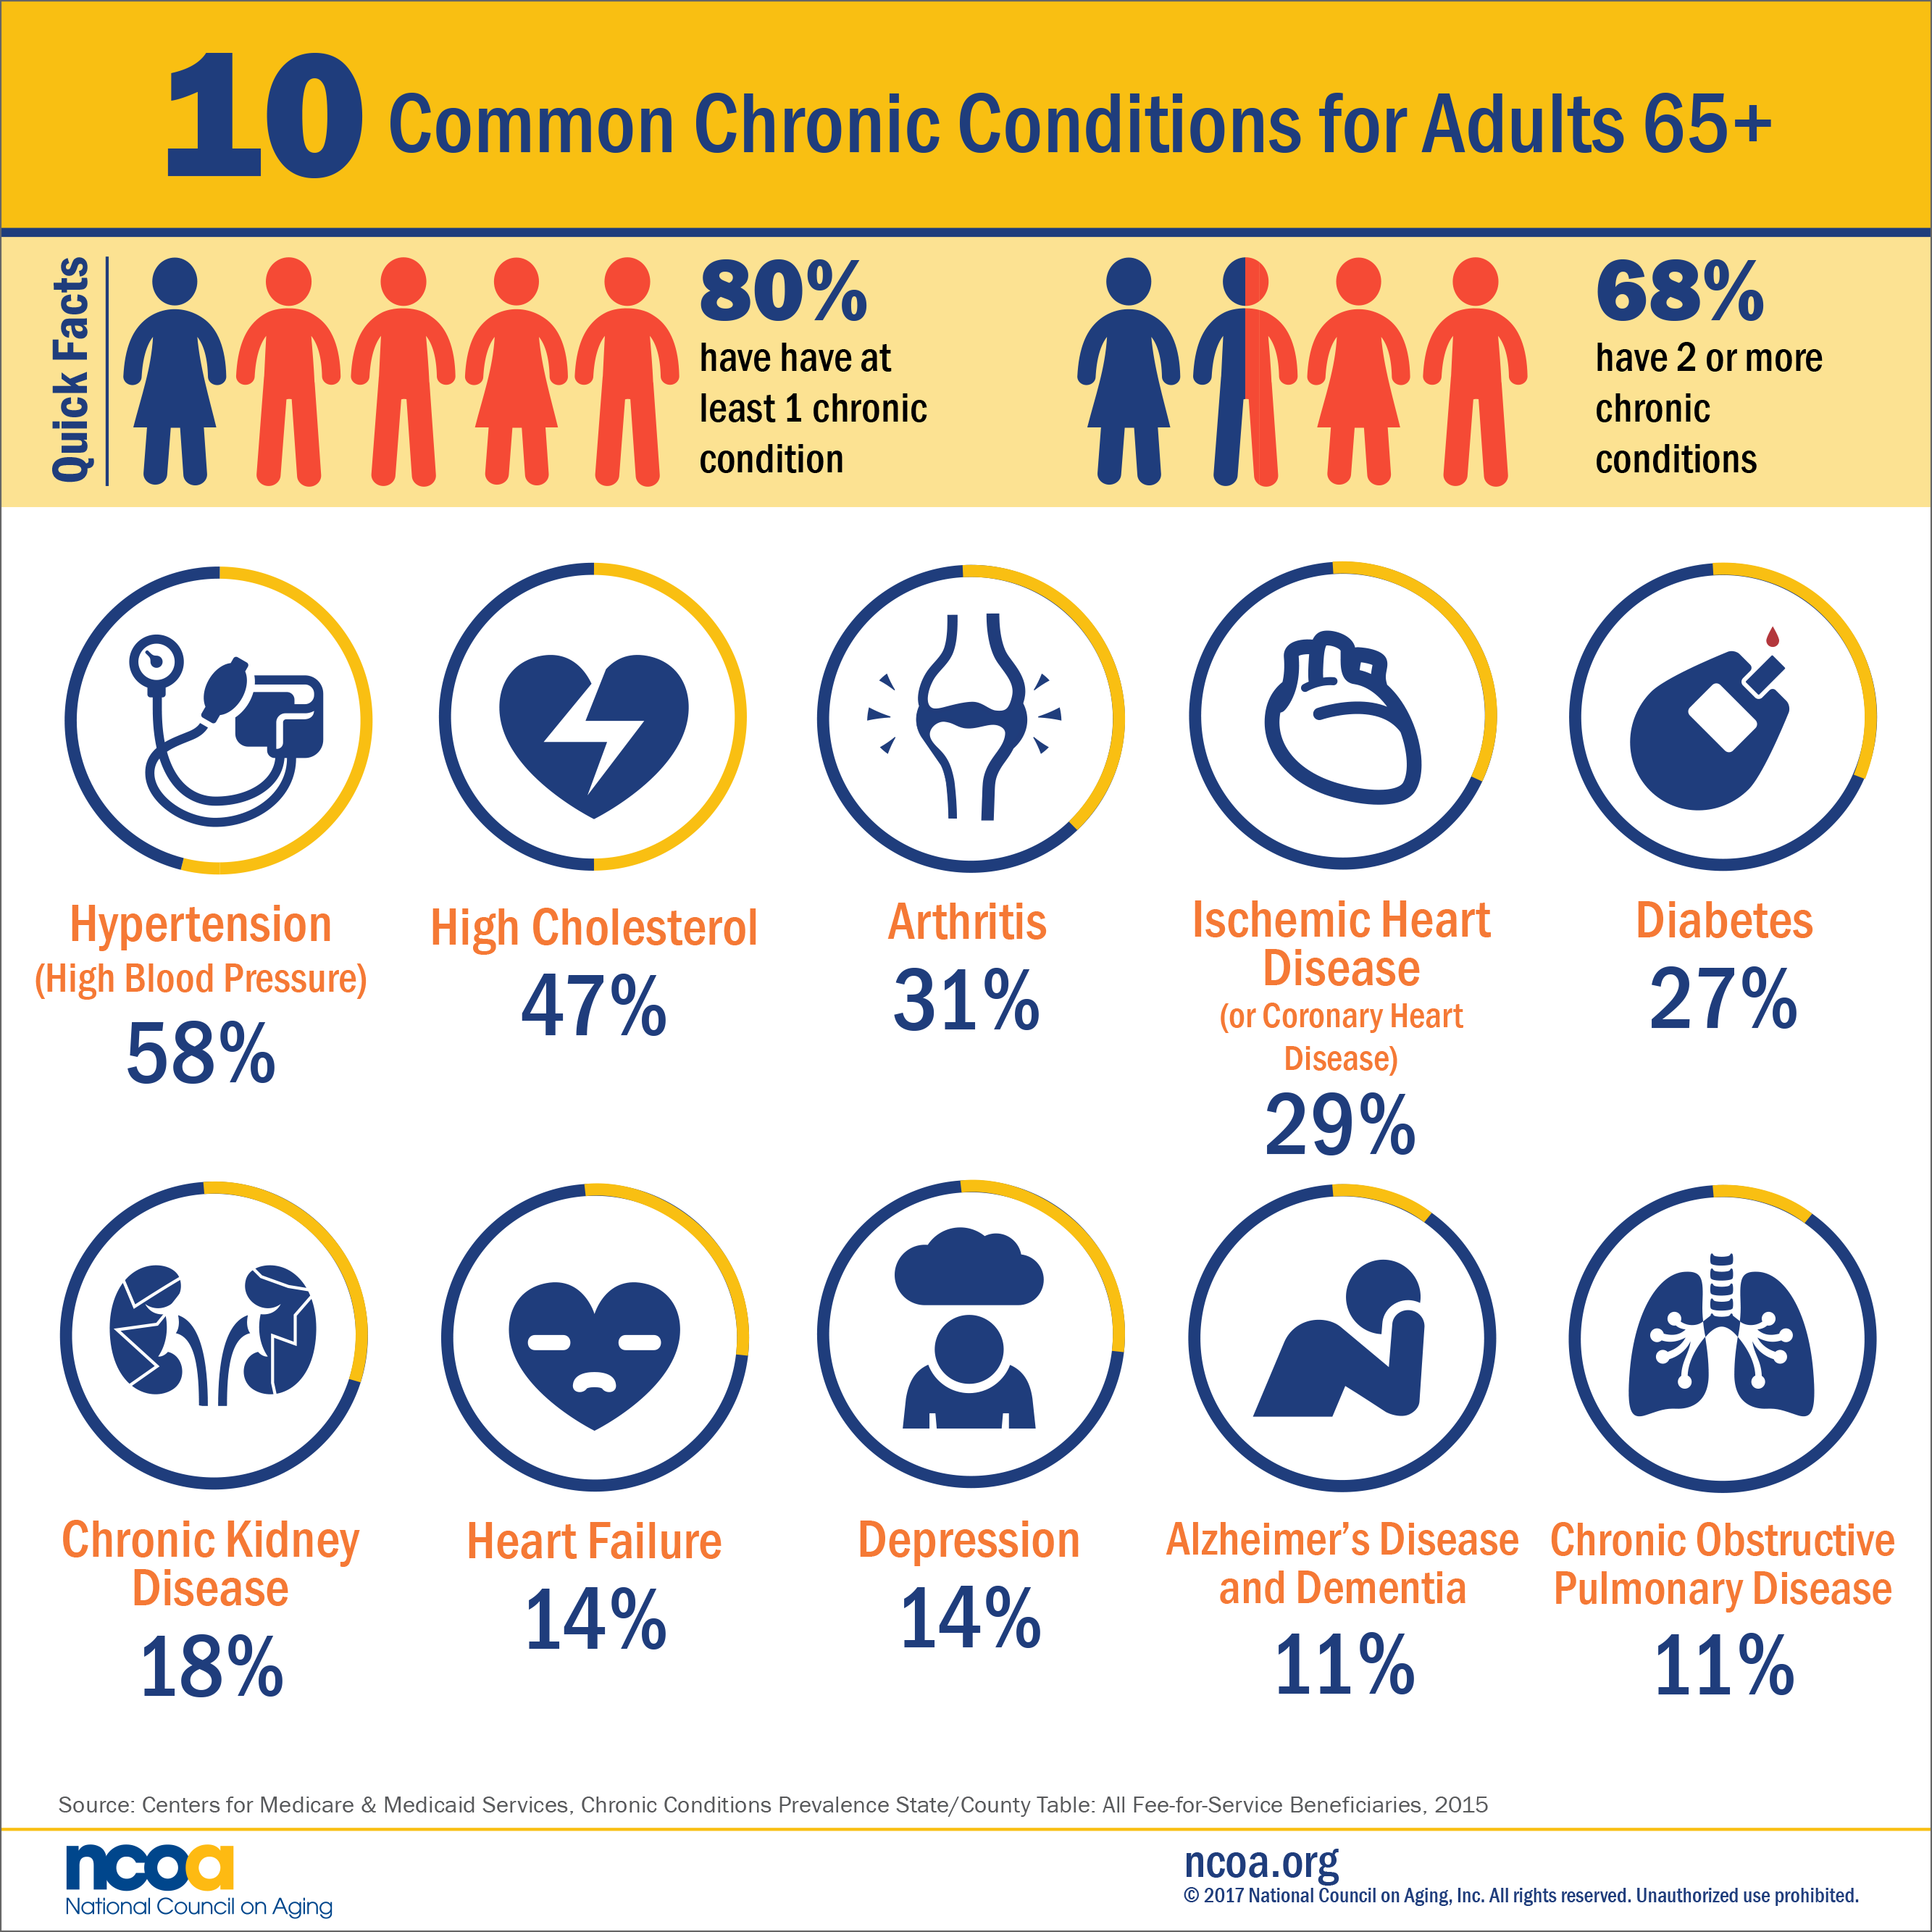 The 10 most common chronic diseases in adults 65+